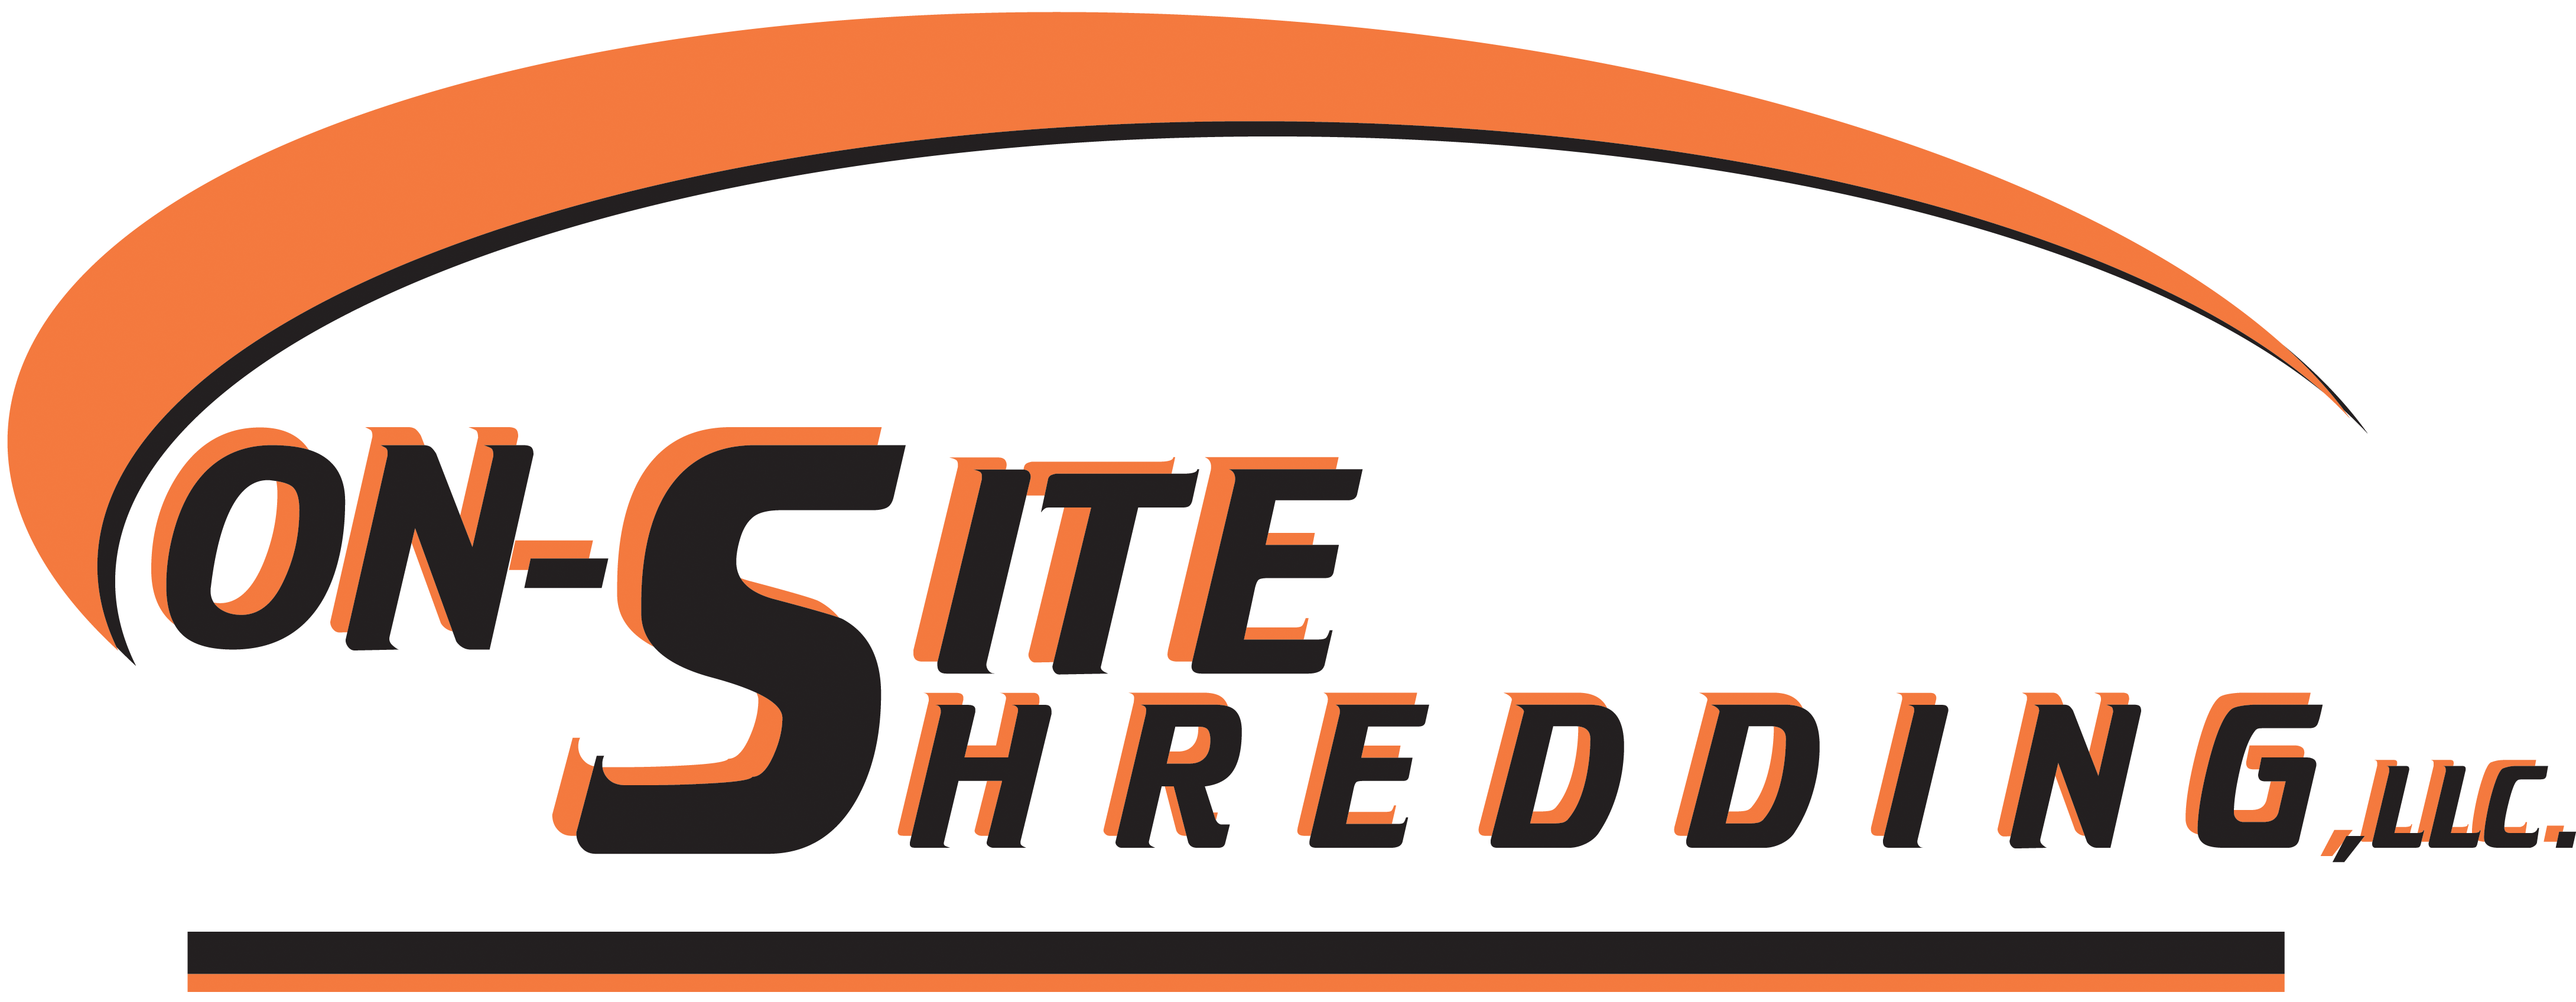 On-Site Shredding Logo 2011